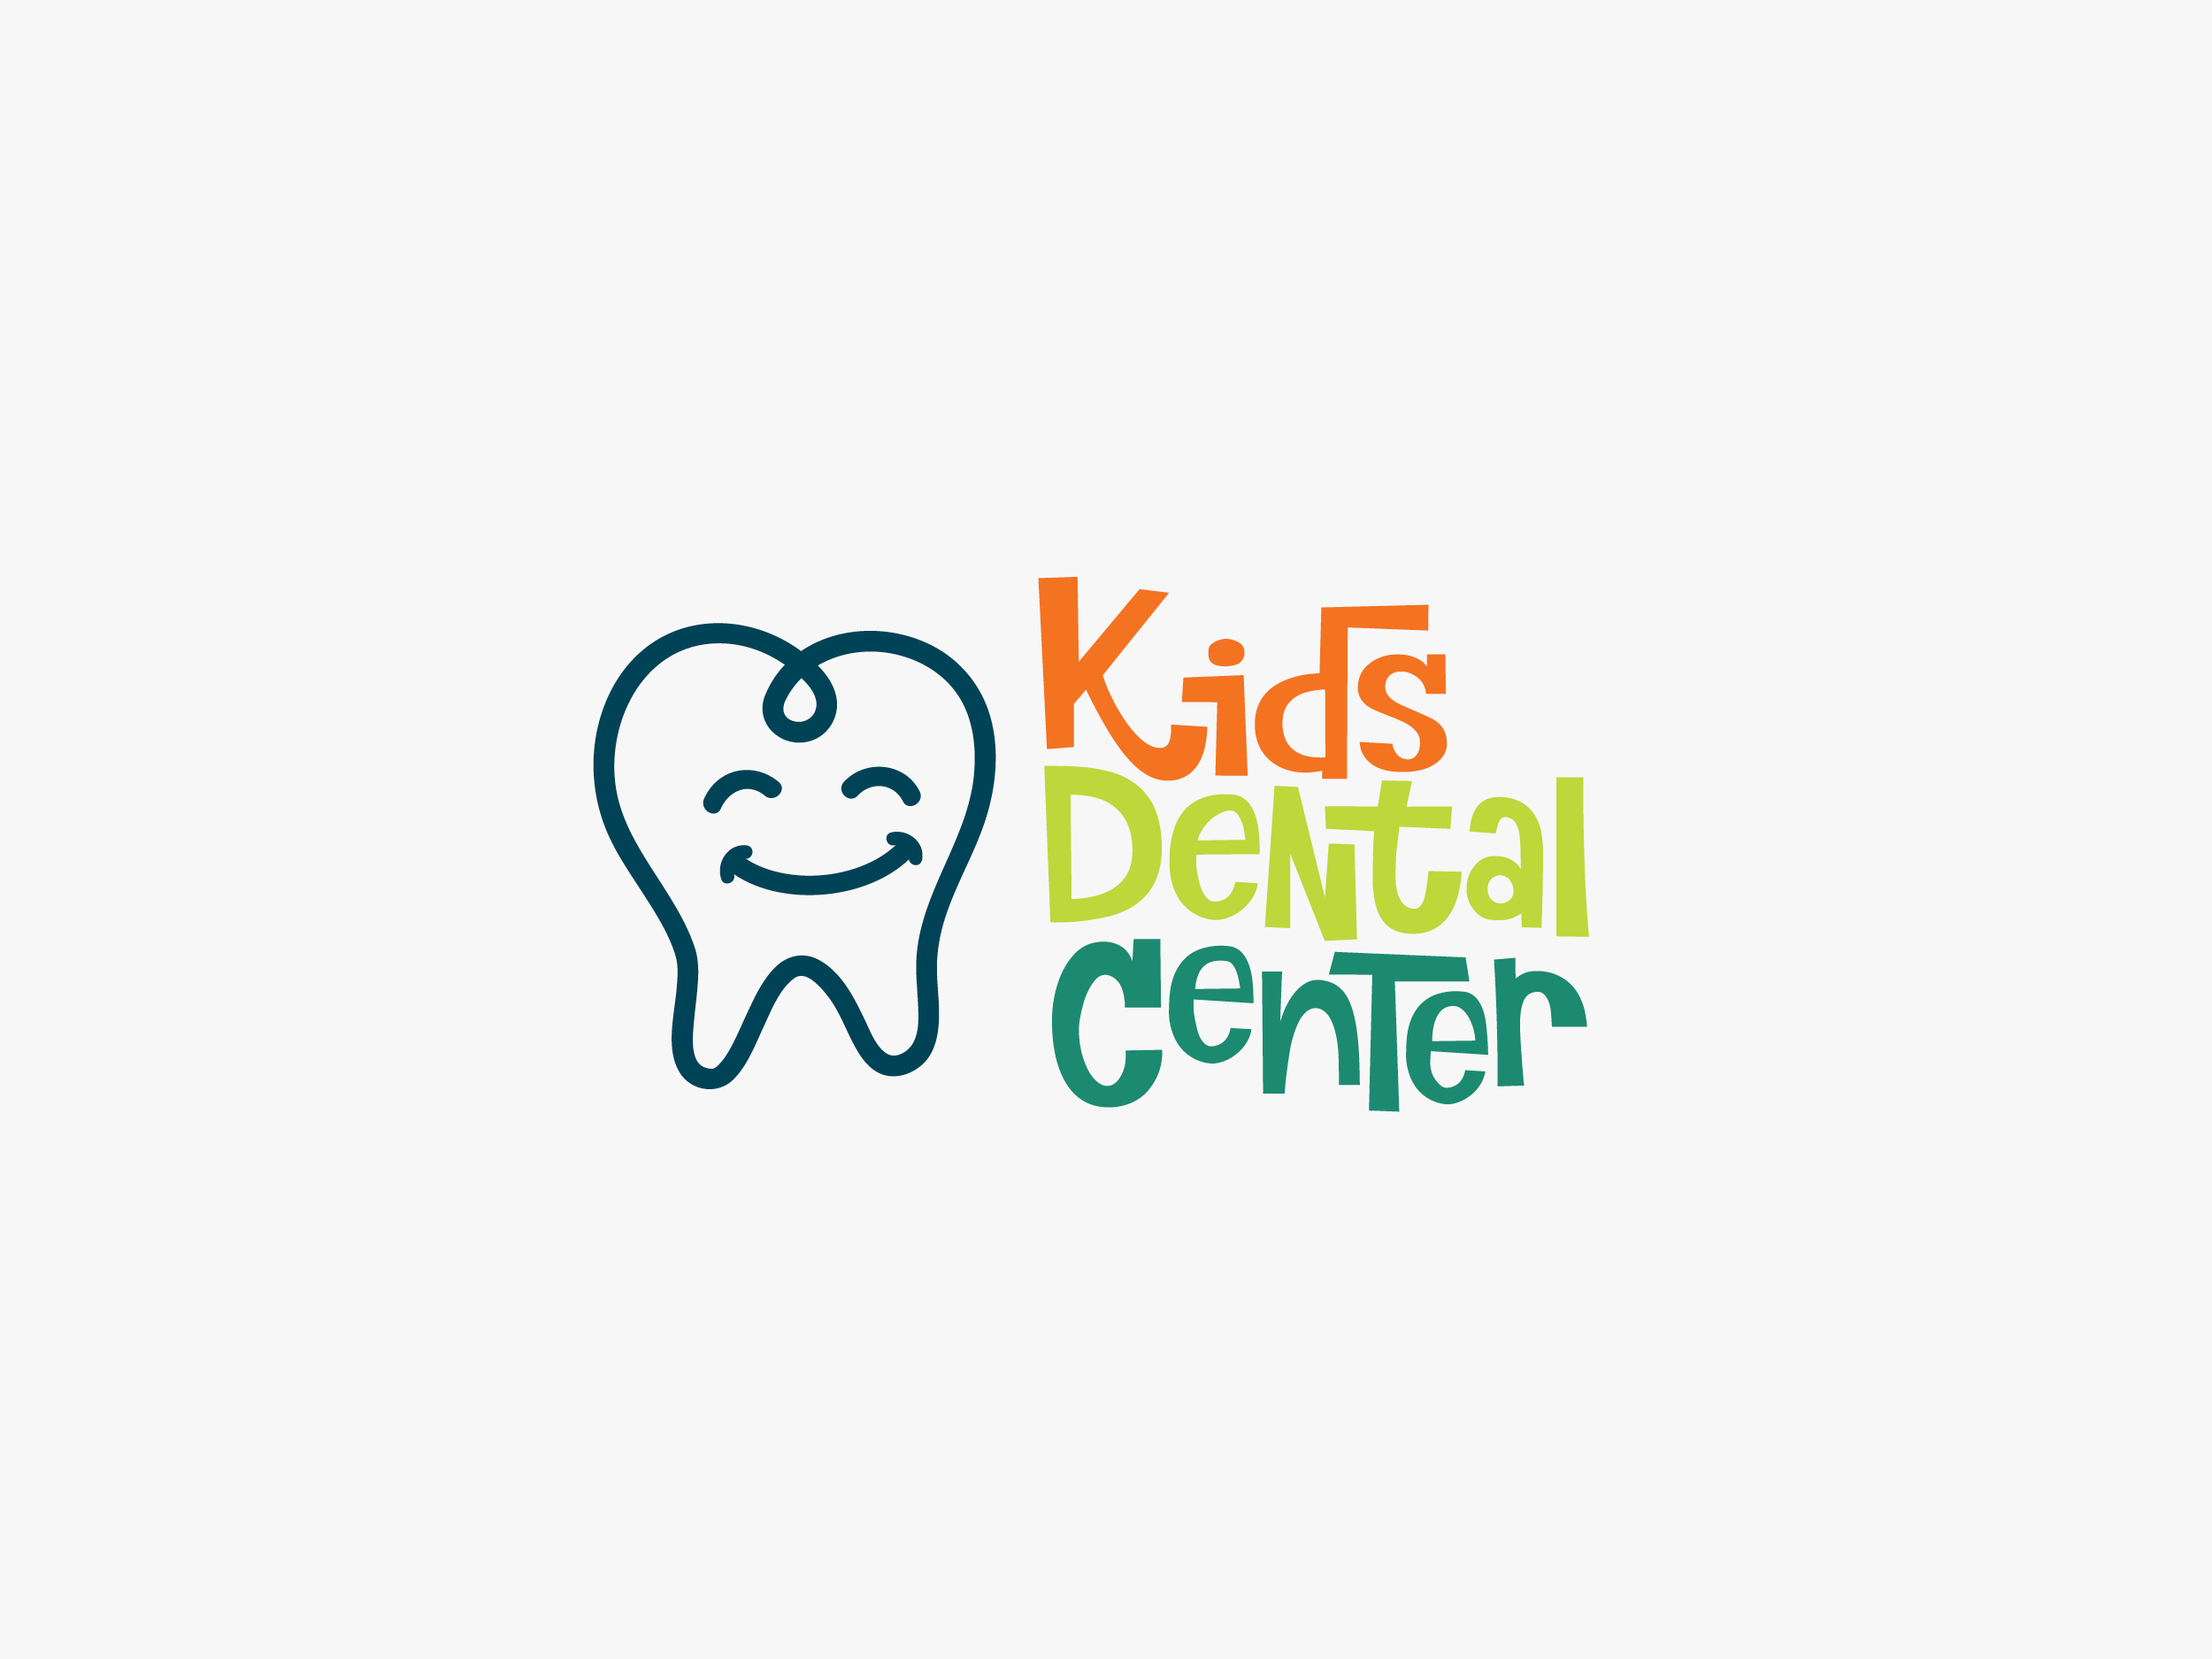 Kids Dental Center.png